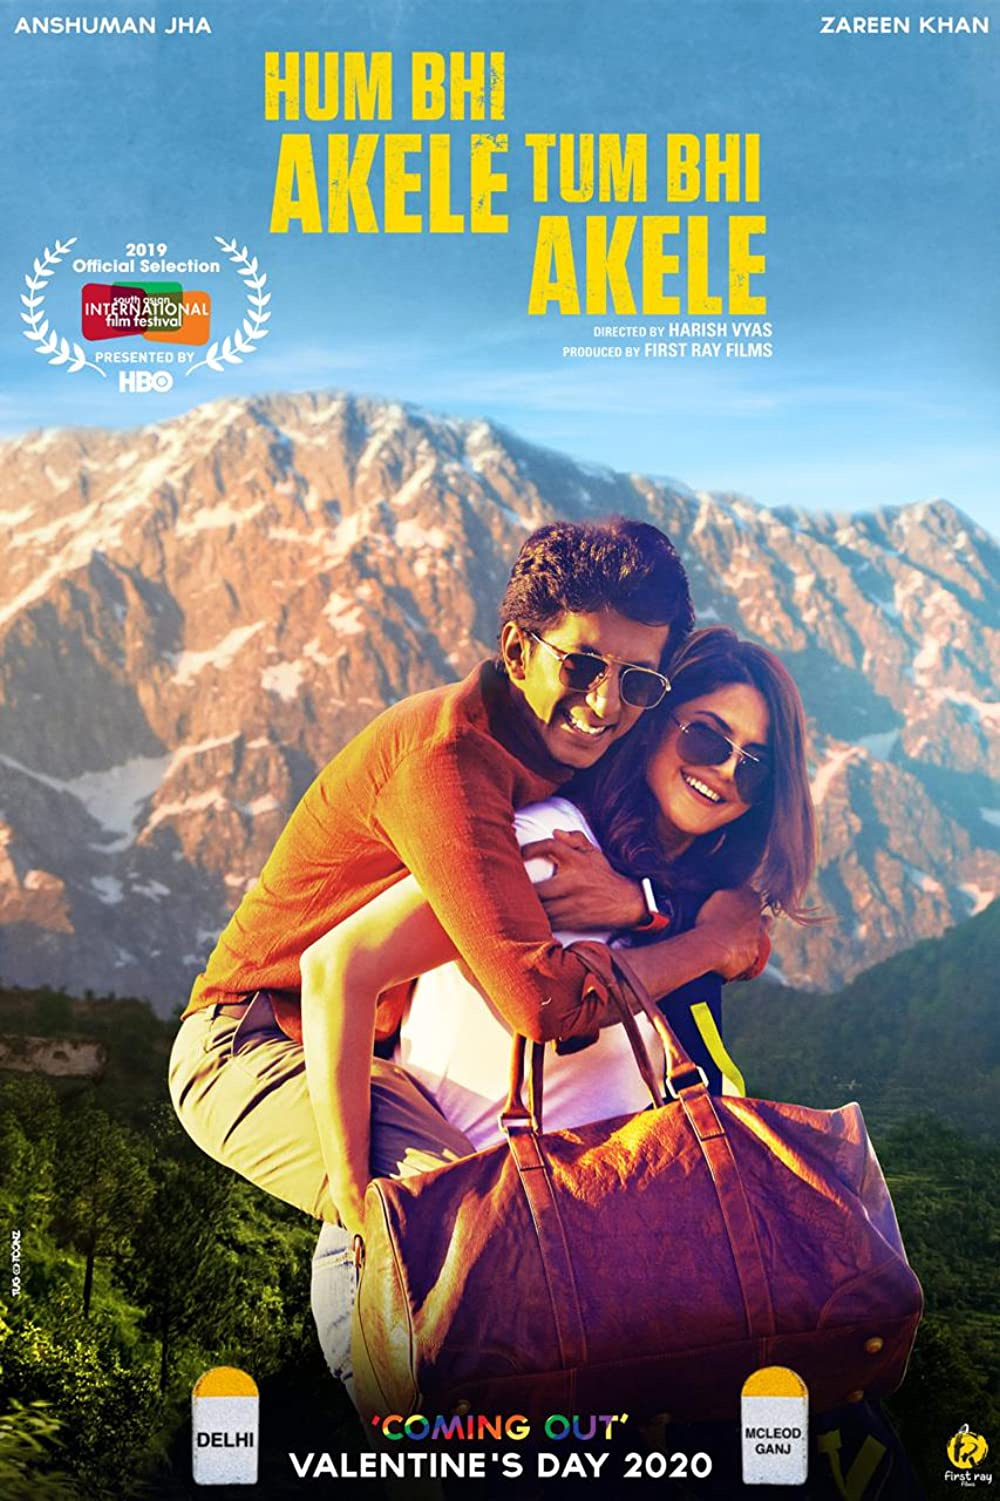 Hum Bhi Akele Tum Bhi Akele 2021 Hindi Movie 720p HDRip ESub 1.2GB x264 AAC